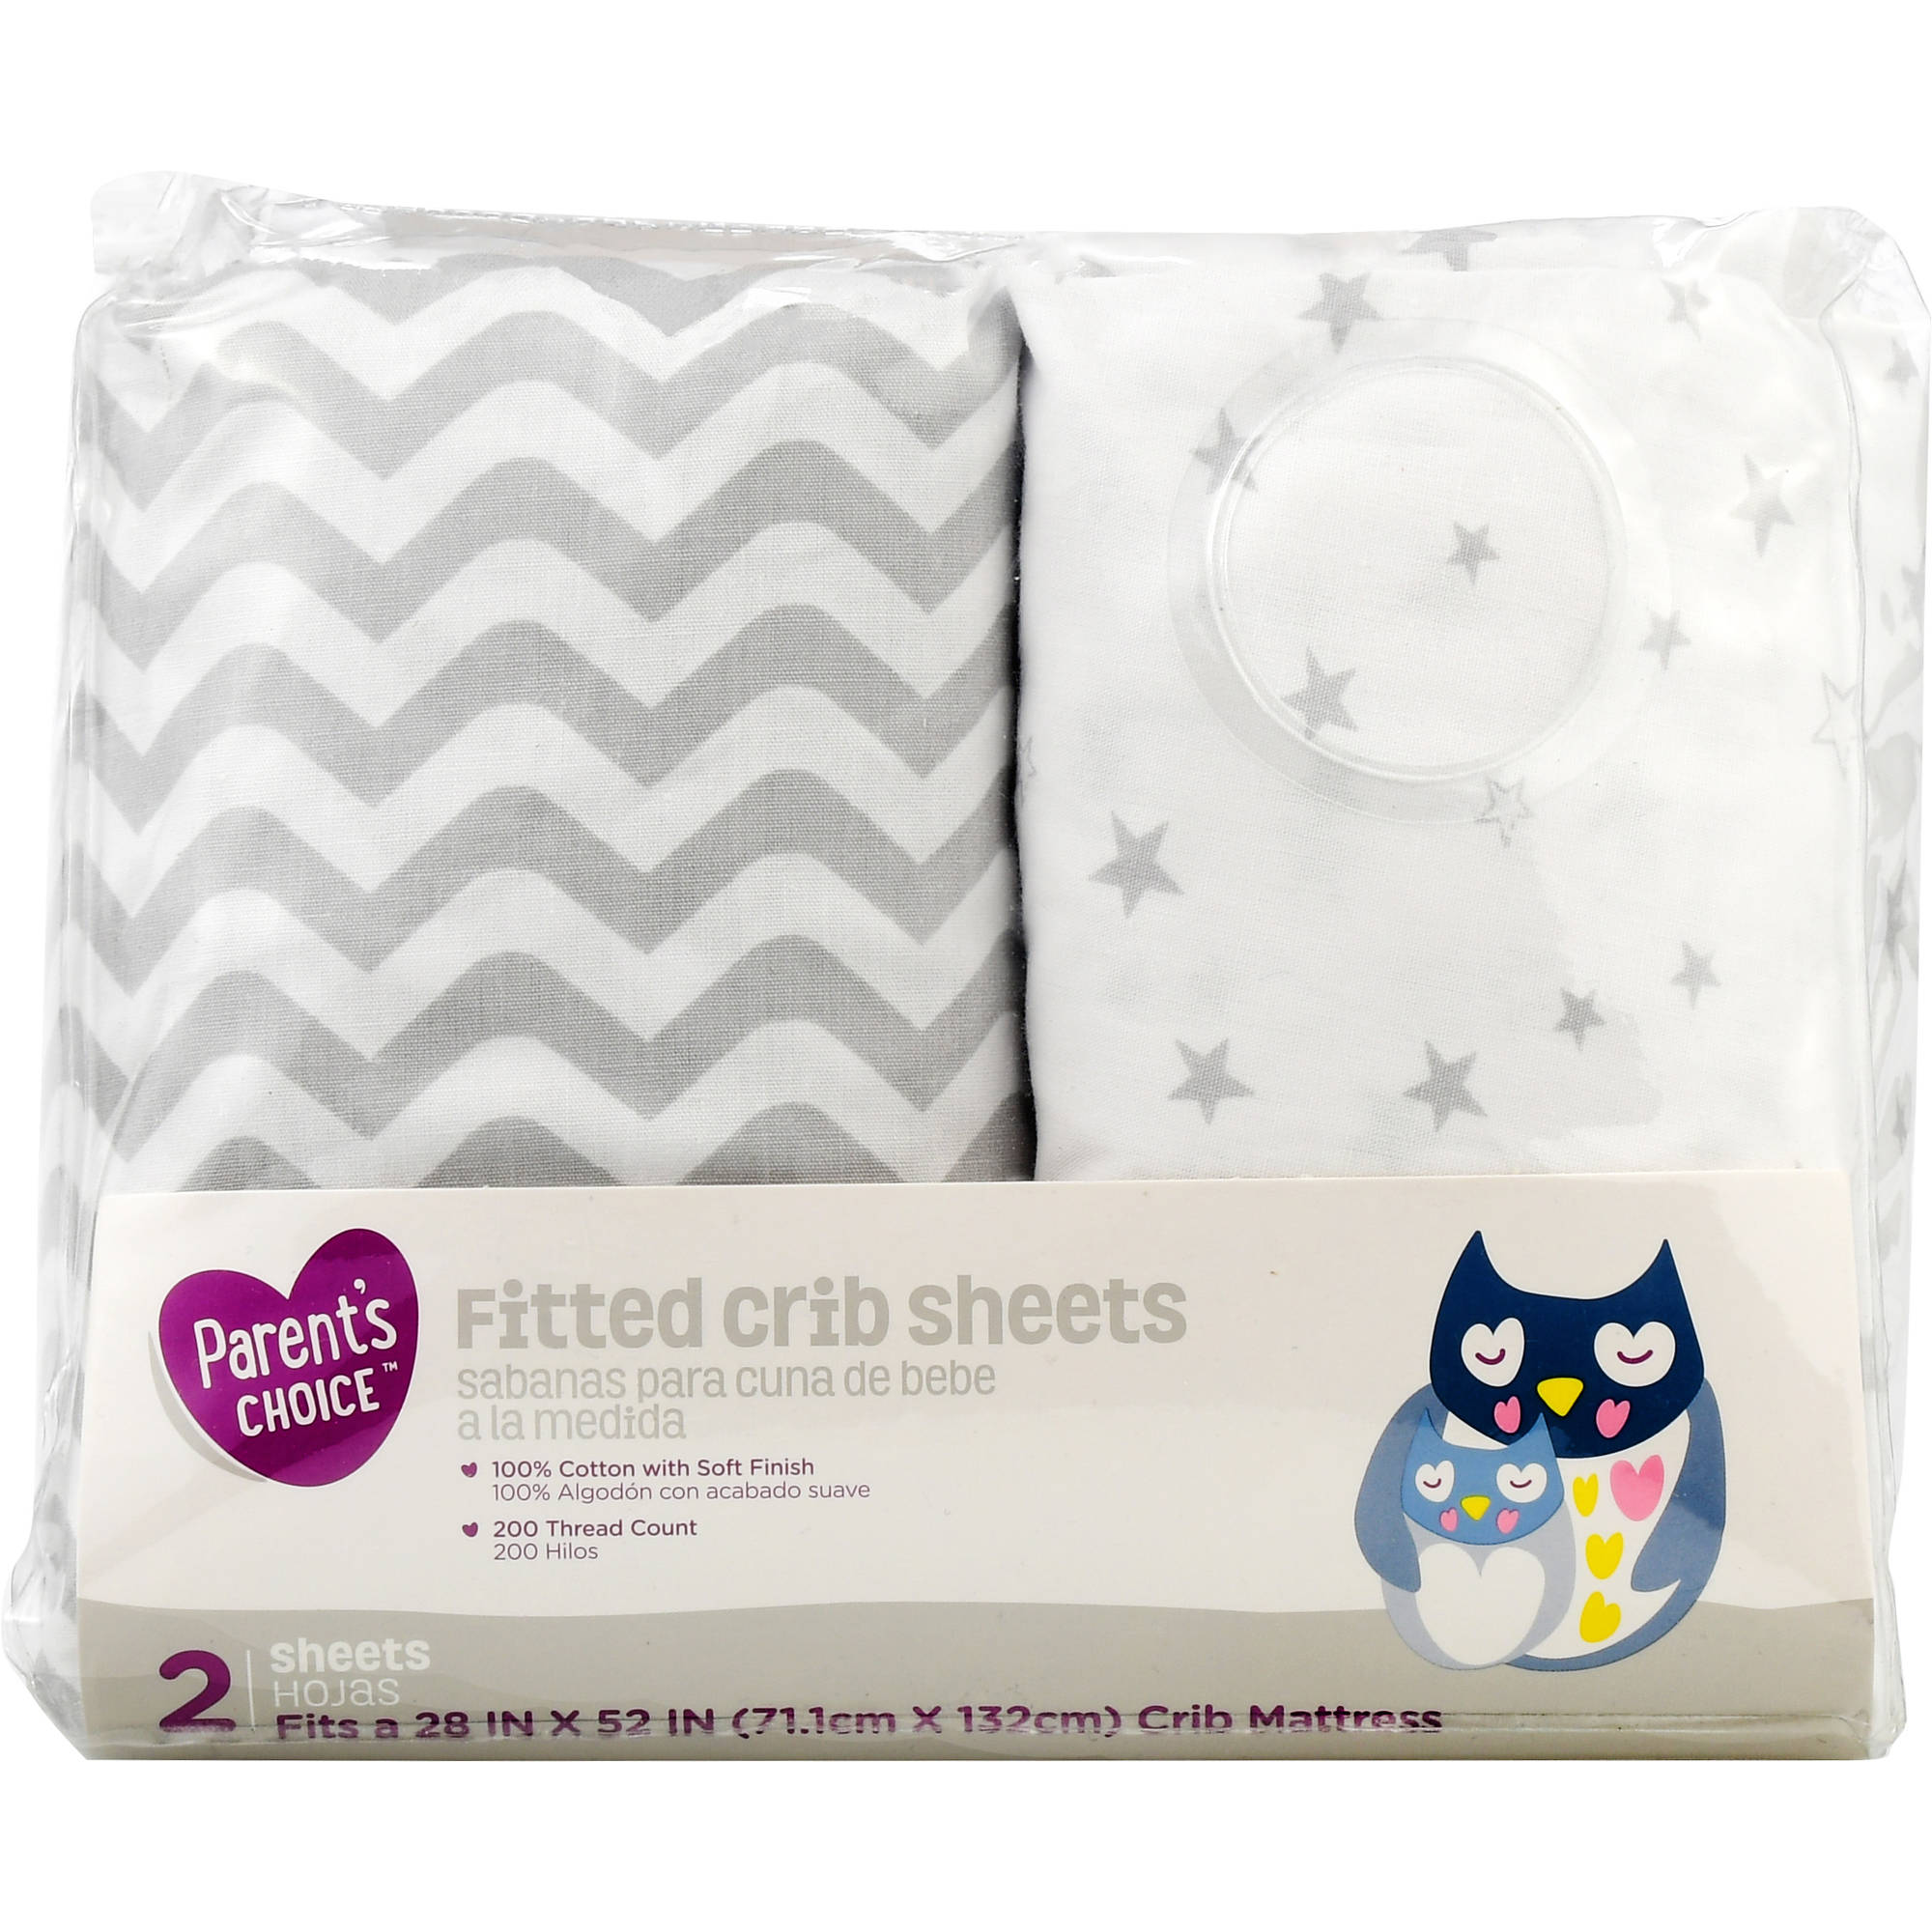 choice fitted crib sheets neutral print - Crib Sheets